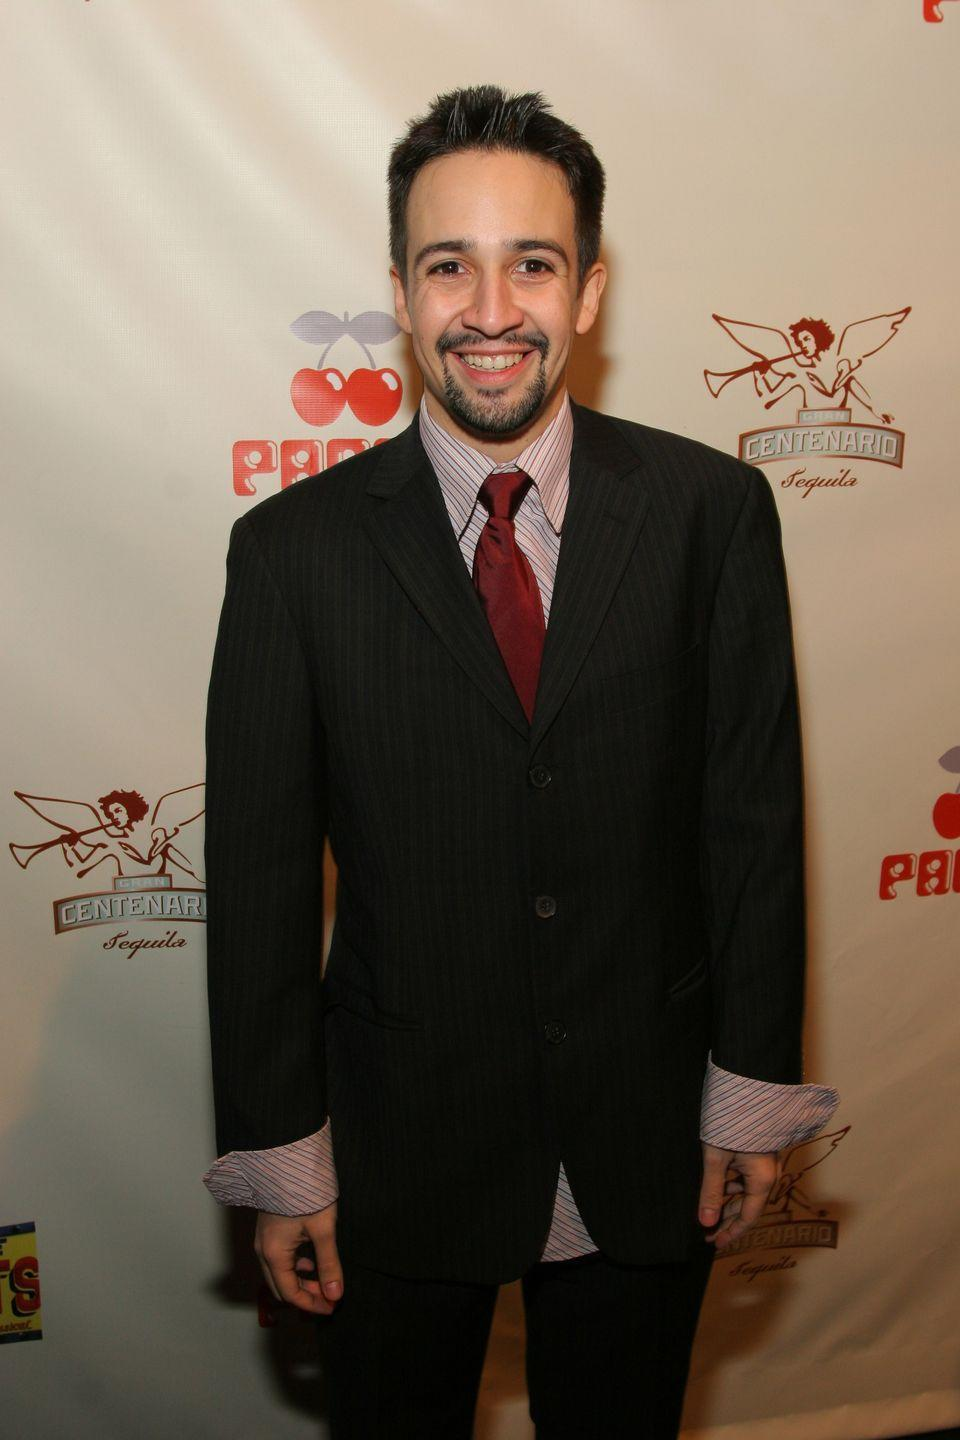 <p>It's impossible to discuss Broadway without mentioning the genius that is Lin-Manuel Miranda. After struggling early in his career, he finally started experiencing success as co-creator of <em>In the Heights, </em>which debuted on Broadway in 2008. The show won four Tony Awards, including Best Musical. Things only got better with the debut of <em>Hamilton</em>, which won 11 Tony Awards, a Pulitzer and Grammy. Miranda has been collaborating with Disney and contributing music to many movies, like <em>Moana. </em>He recently appeared on the big screen in 2018's <em>Mary Poppins Returns.</em></p>